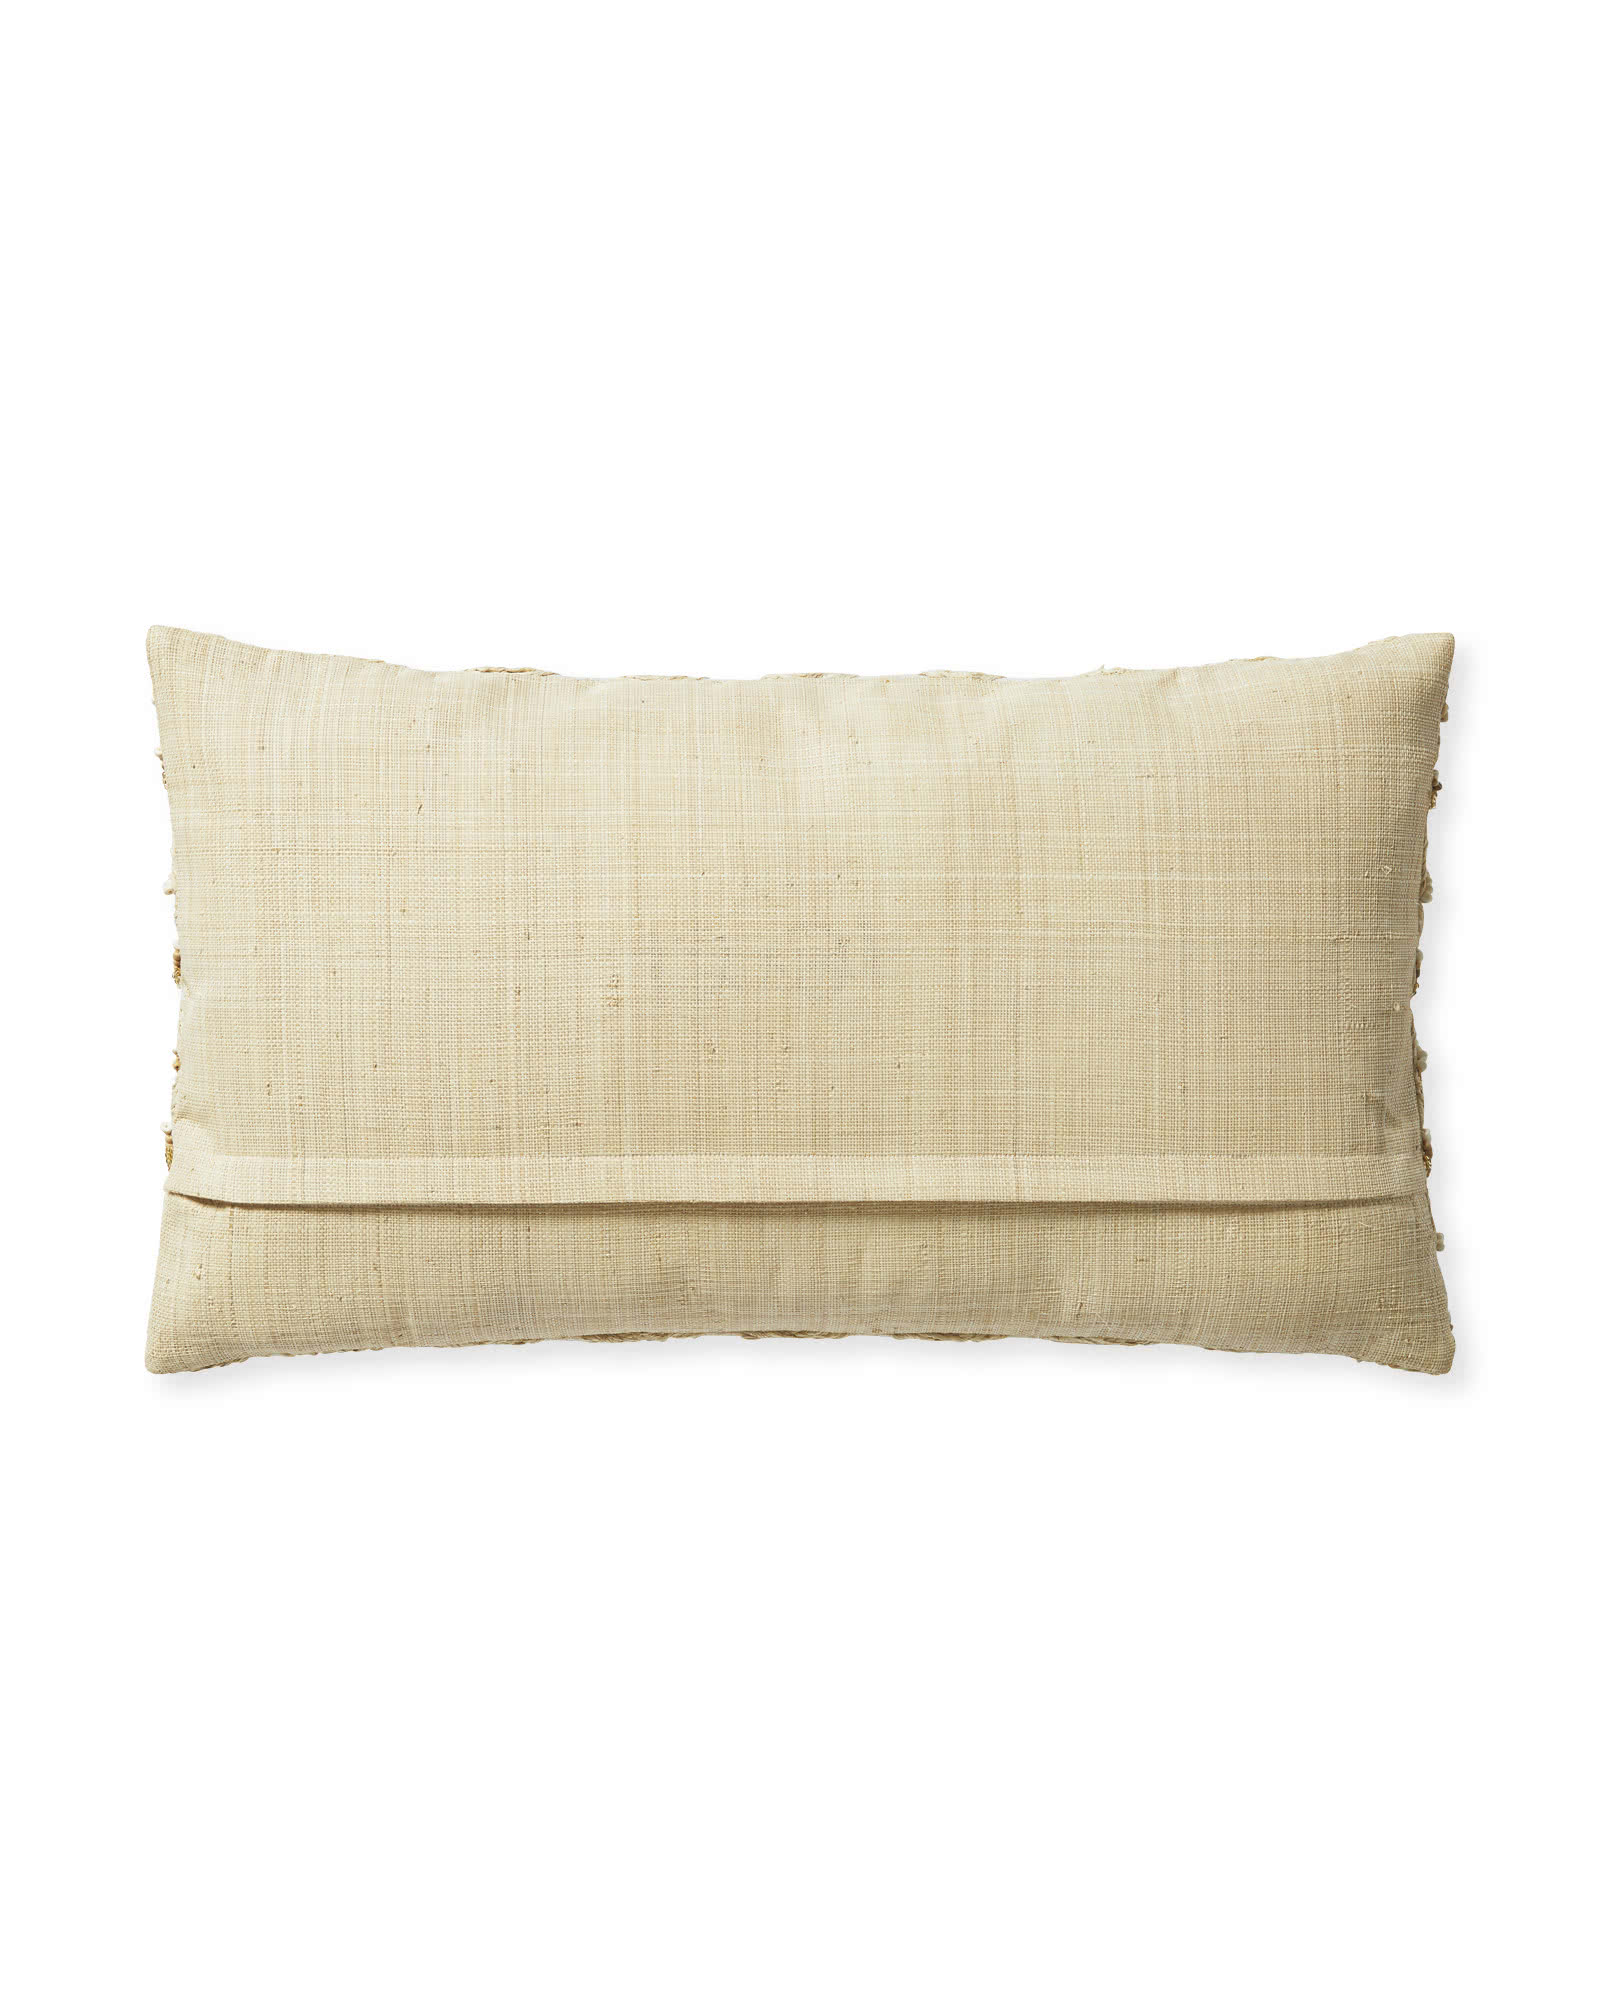 Avila Pillow Cover, Sand